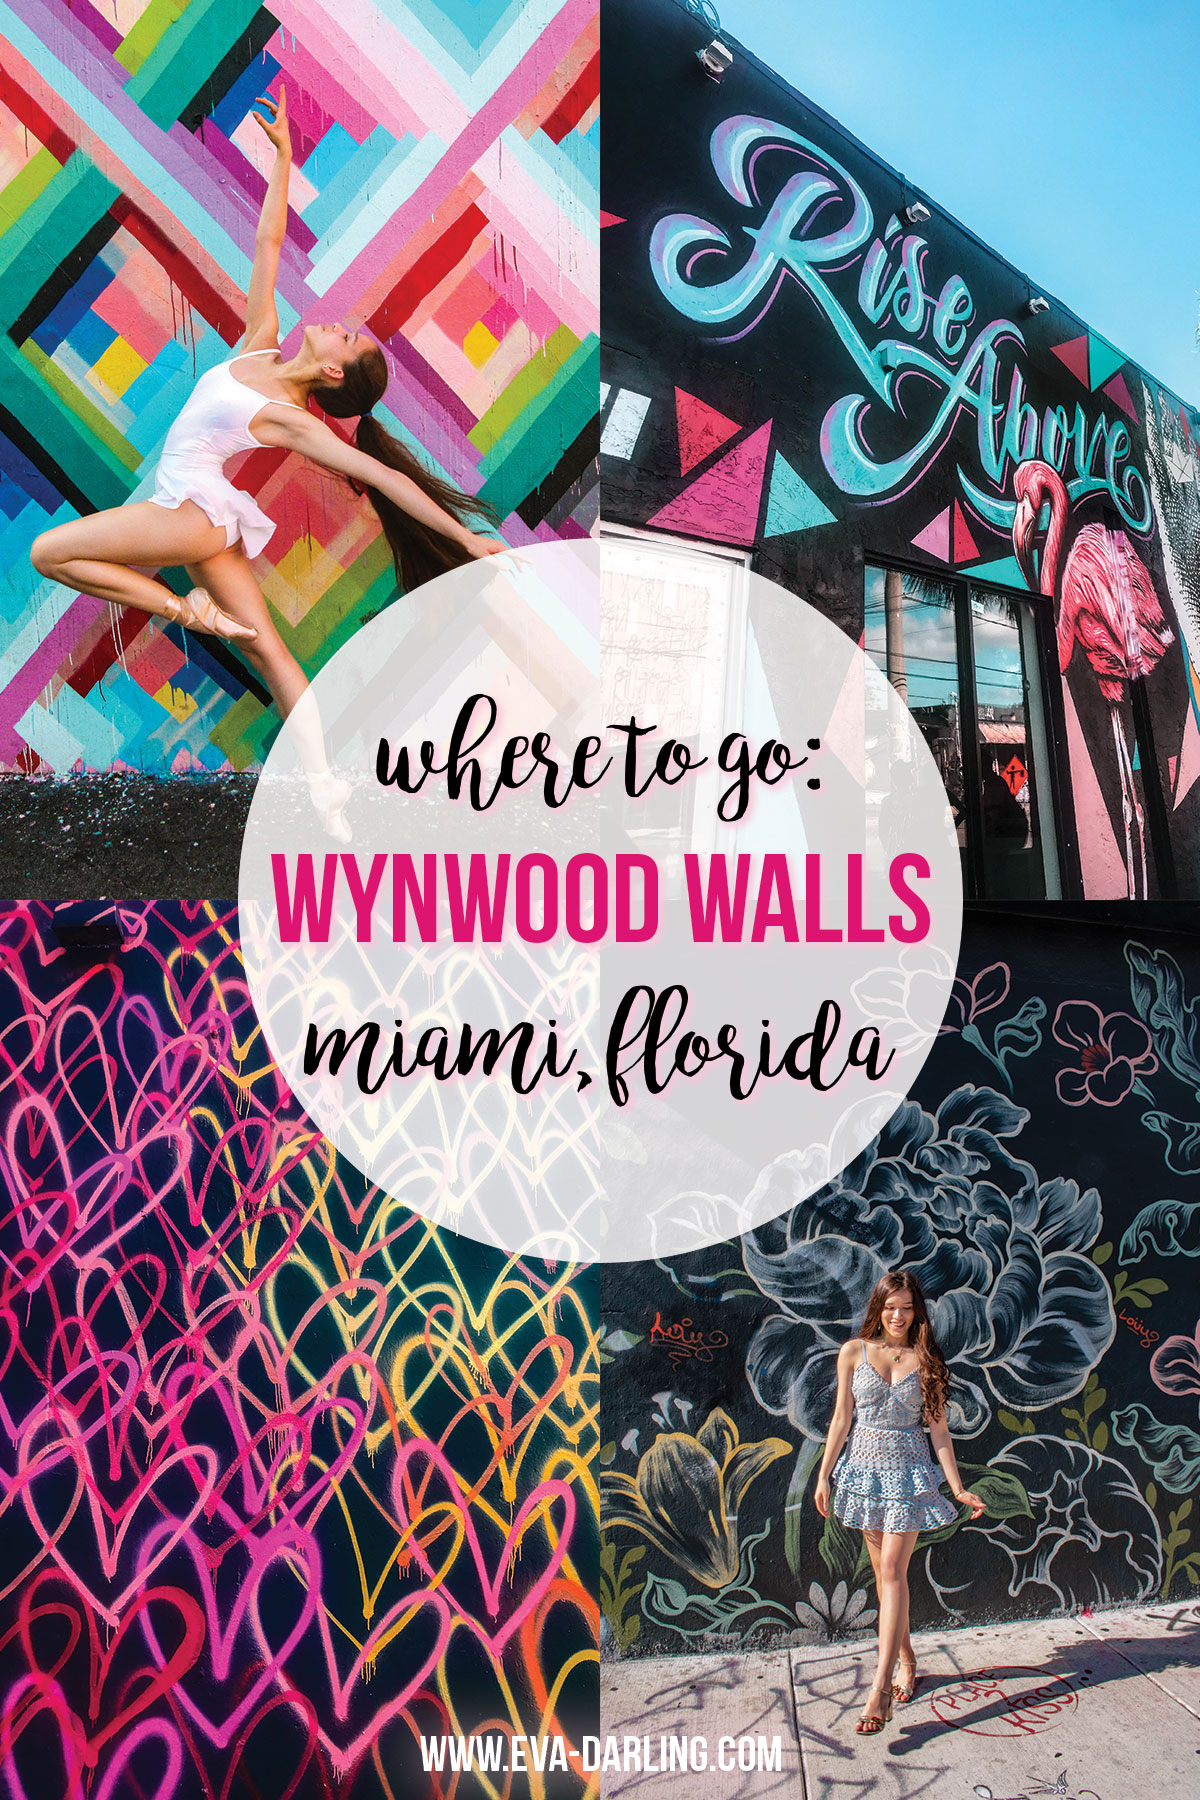 where to go in wynwood walls miami florida wynwood art district street art mural travel blogger unique photo shoot location instagrammable places in miami south florida